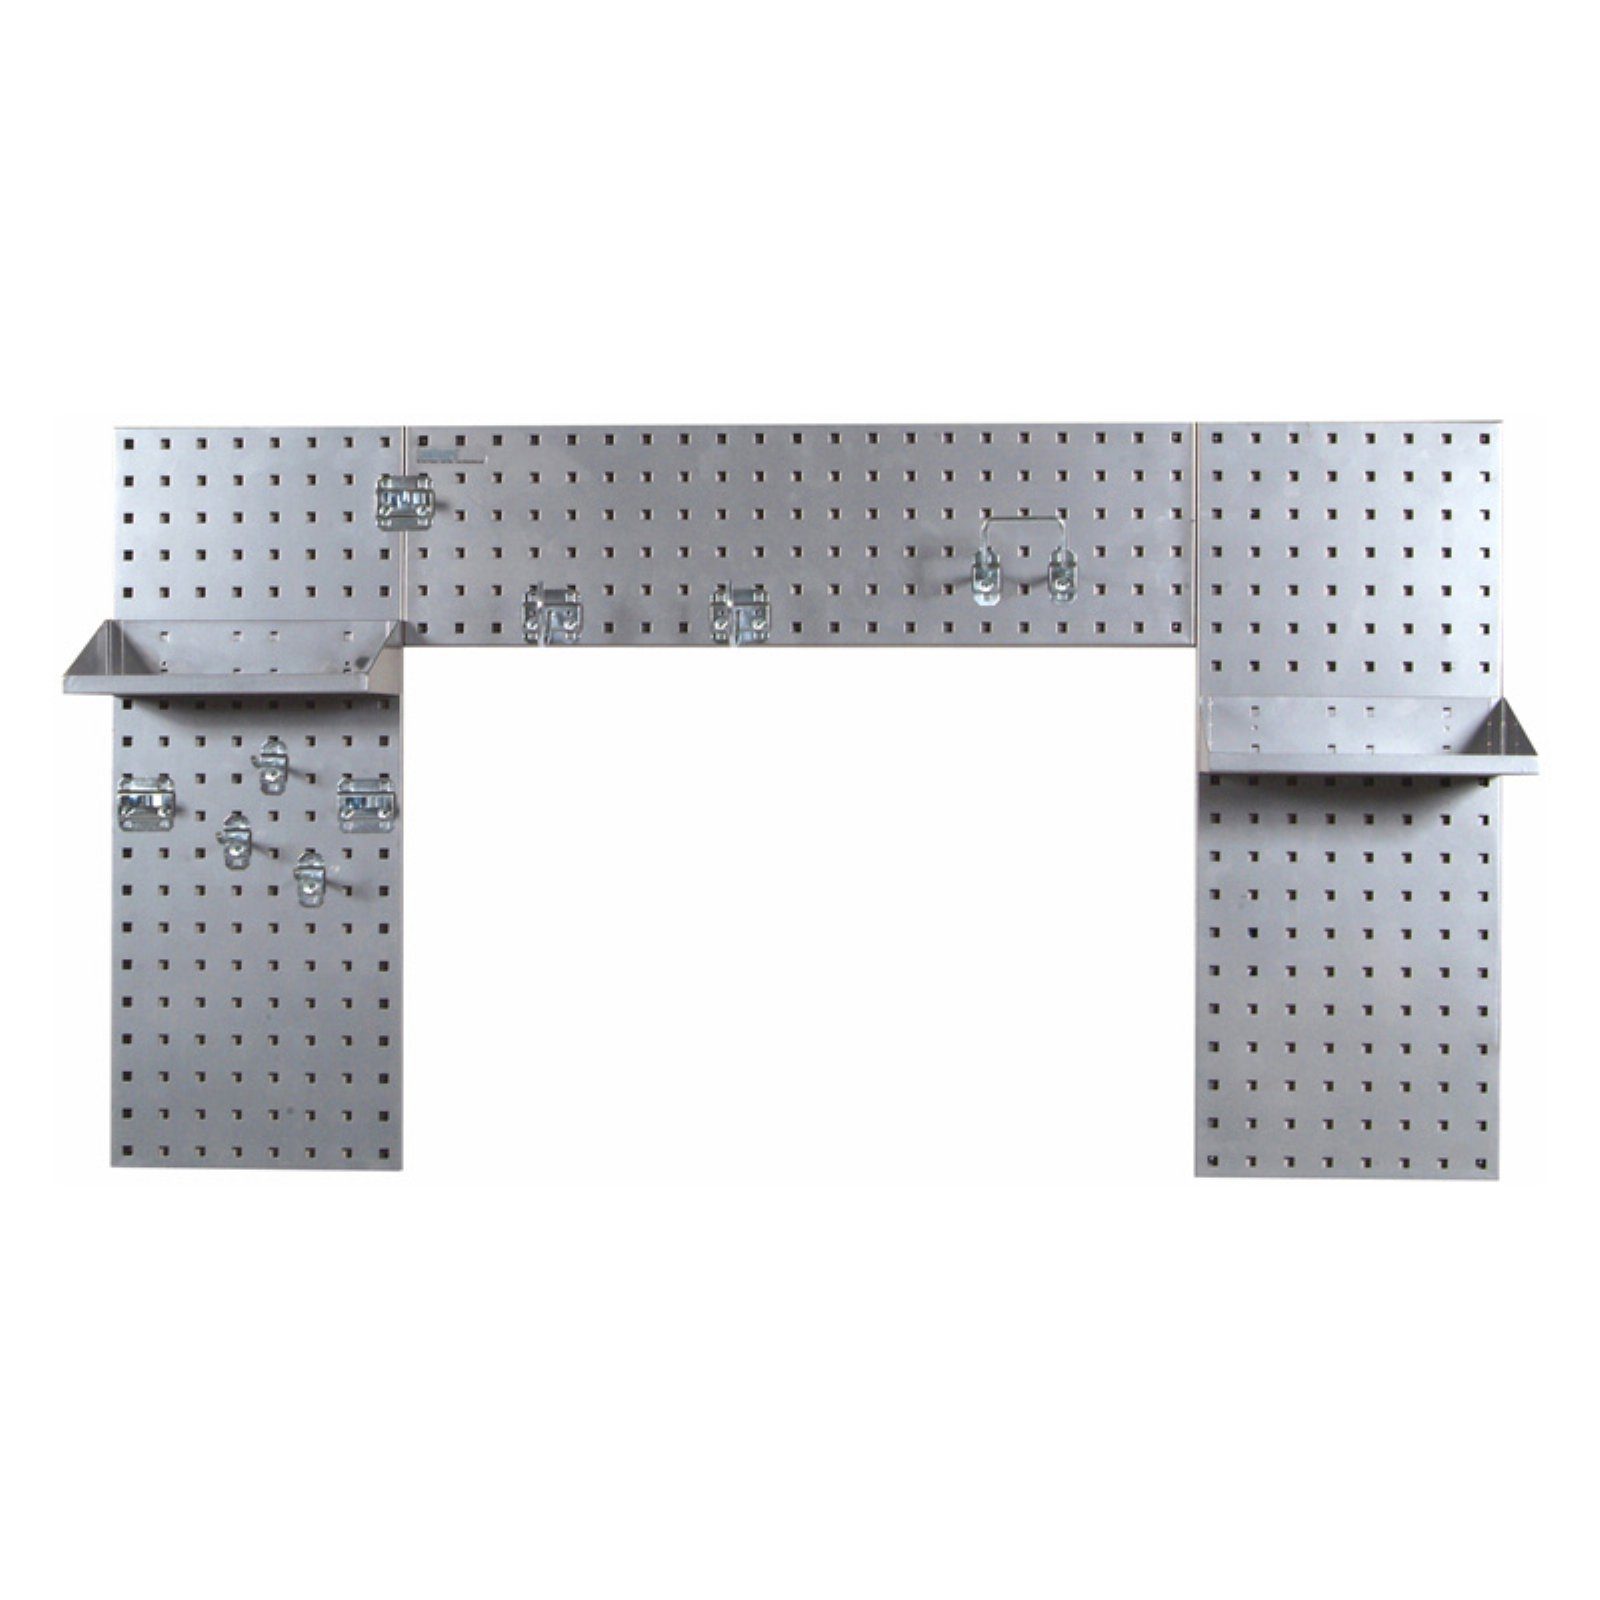 Silver Laundry Room Organizer Kit with (3) 18 Gauge Steel Square Hole Pegboard, (2) Steel Shelves and 9 pc. LocHook Assortment